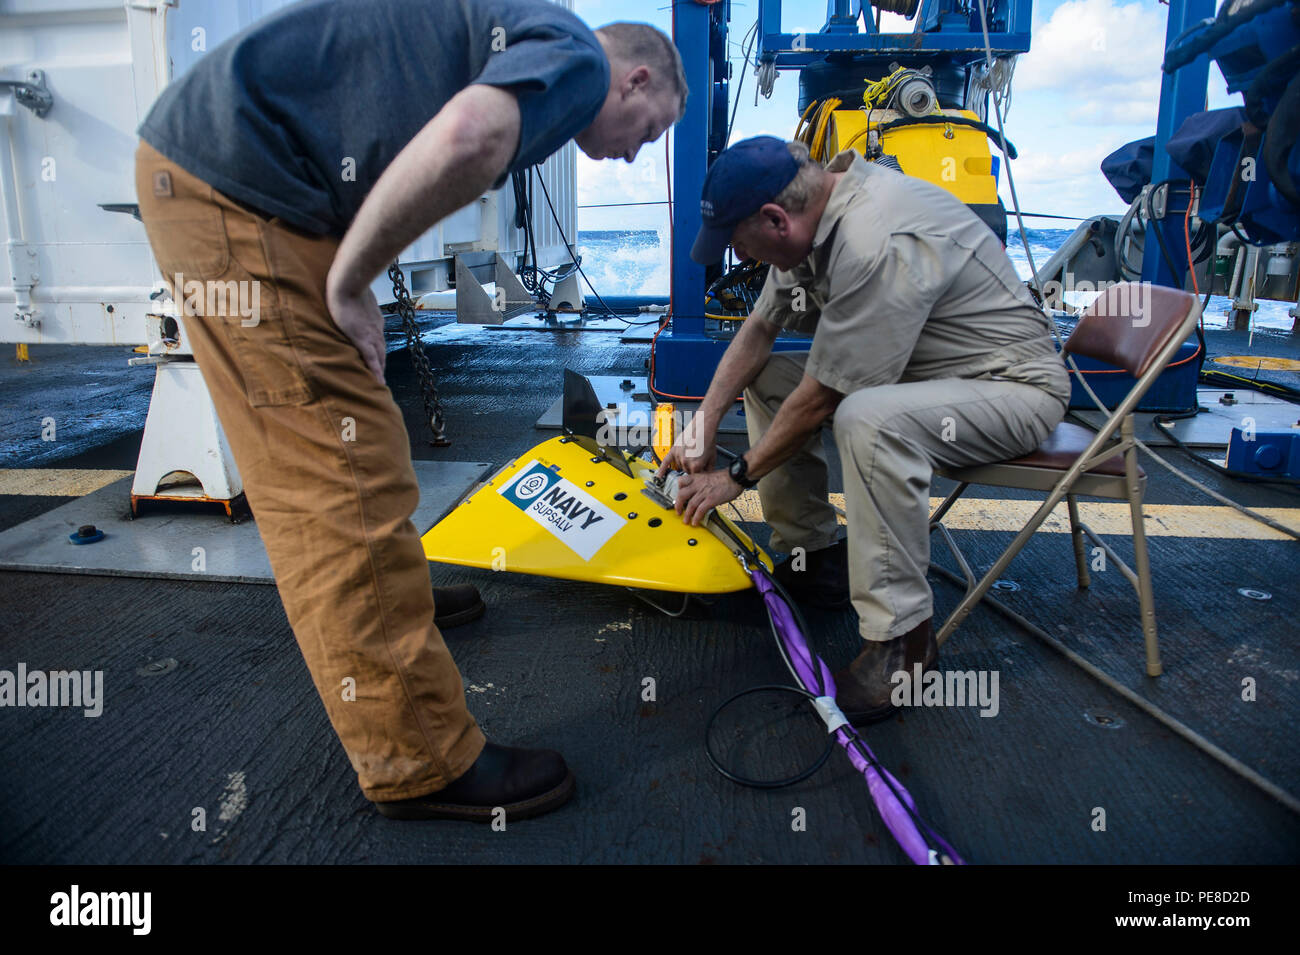 151023-N-RZ218-076   BAHAMAS (Oct. 23, 2015) Ric Sasse (left) and Curt Newport (right), contractors with Phoenix International Incorporated, prepare a tow pinger locater 25 (TPL 25) for the upcoming salvage mission aboard USNS Apache (T-ATF 172). USNS Apache departed Norfolk, Va., Oct. 19, to begin searching for wreckage from the missing U.S. Flagged merchant vessel El Faro. The ship is equipped with several pieces of underwater search equipment, including a voyage data recorder locator, side-scan sonar and an underwater remote operated vehicle. The Navy's mission will be to first locate the s Stock Photo